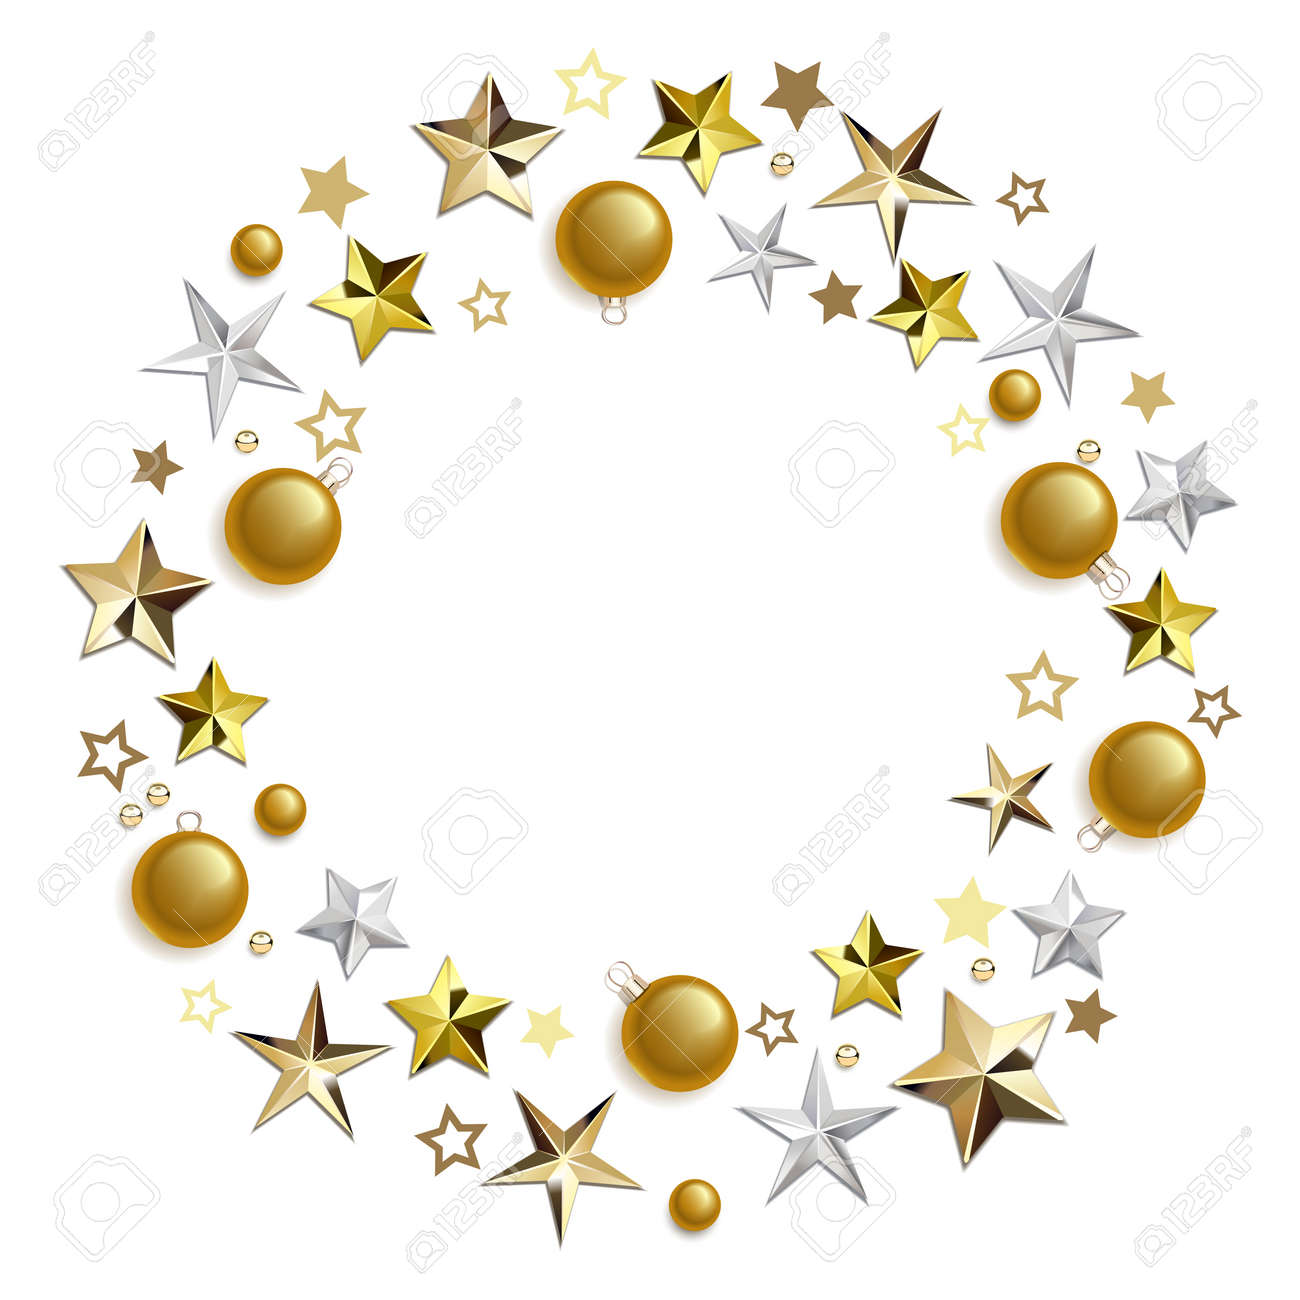 Vector Round Concept with Golden Decorations isolated on white background - 157427335